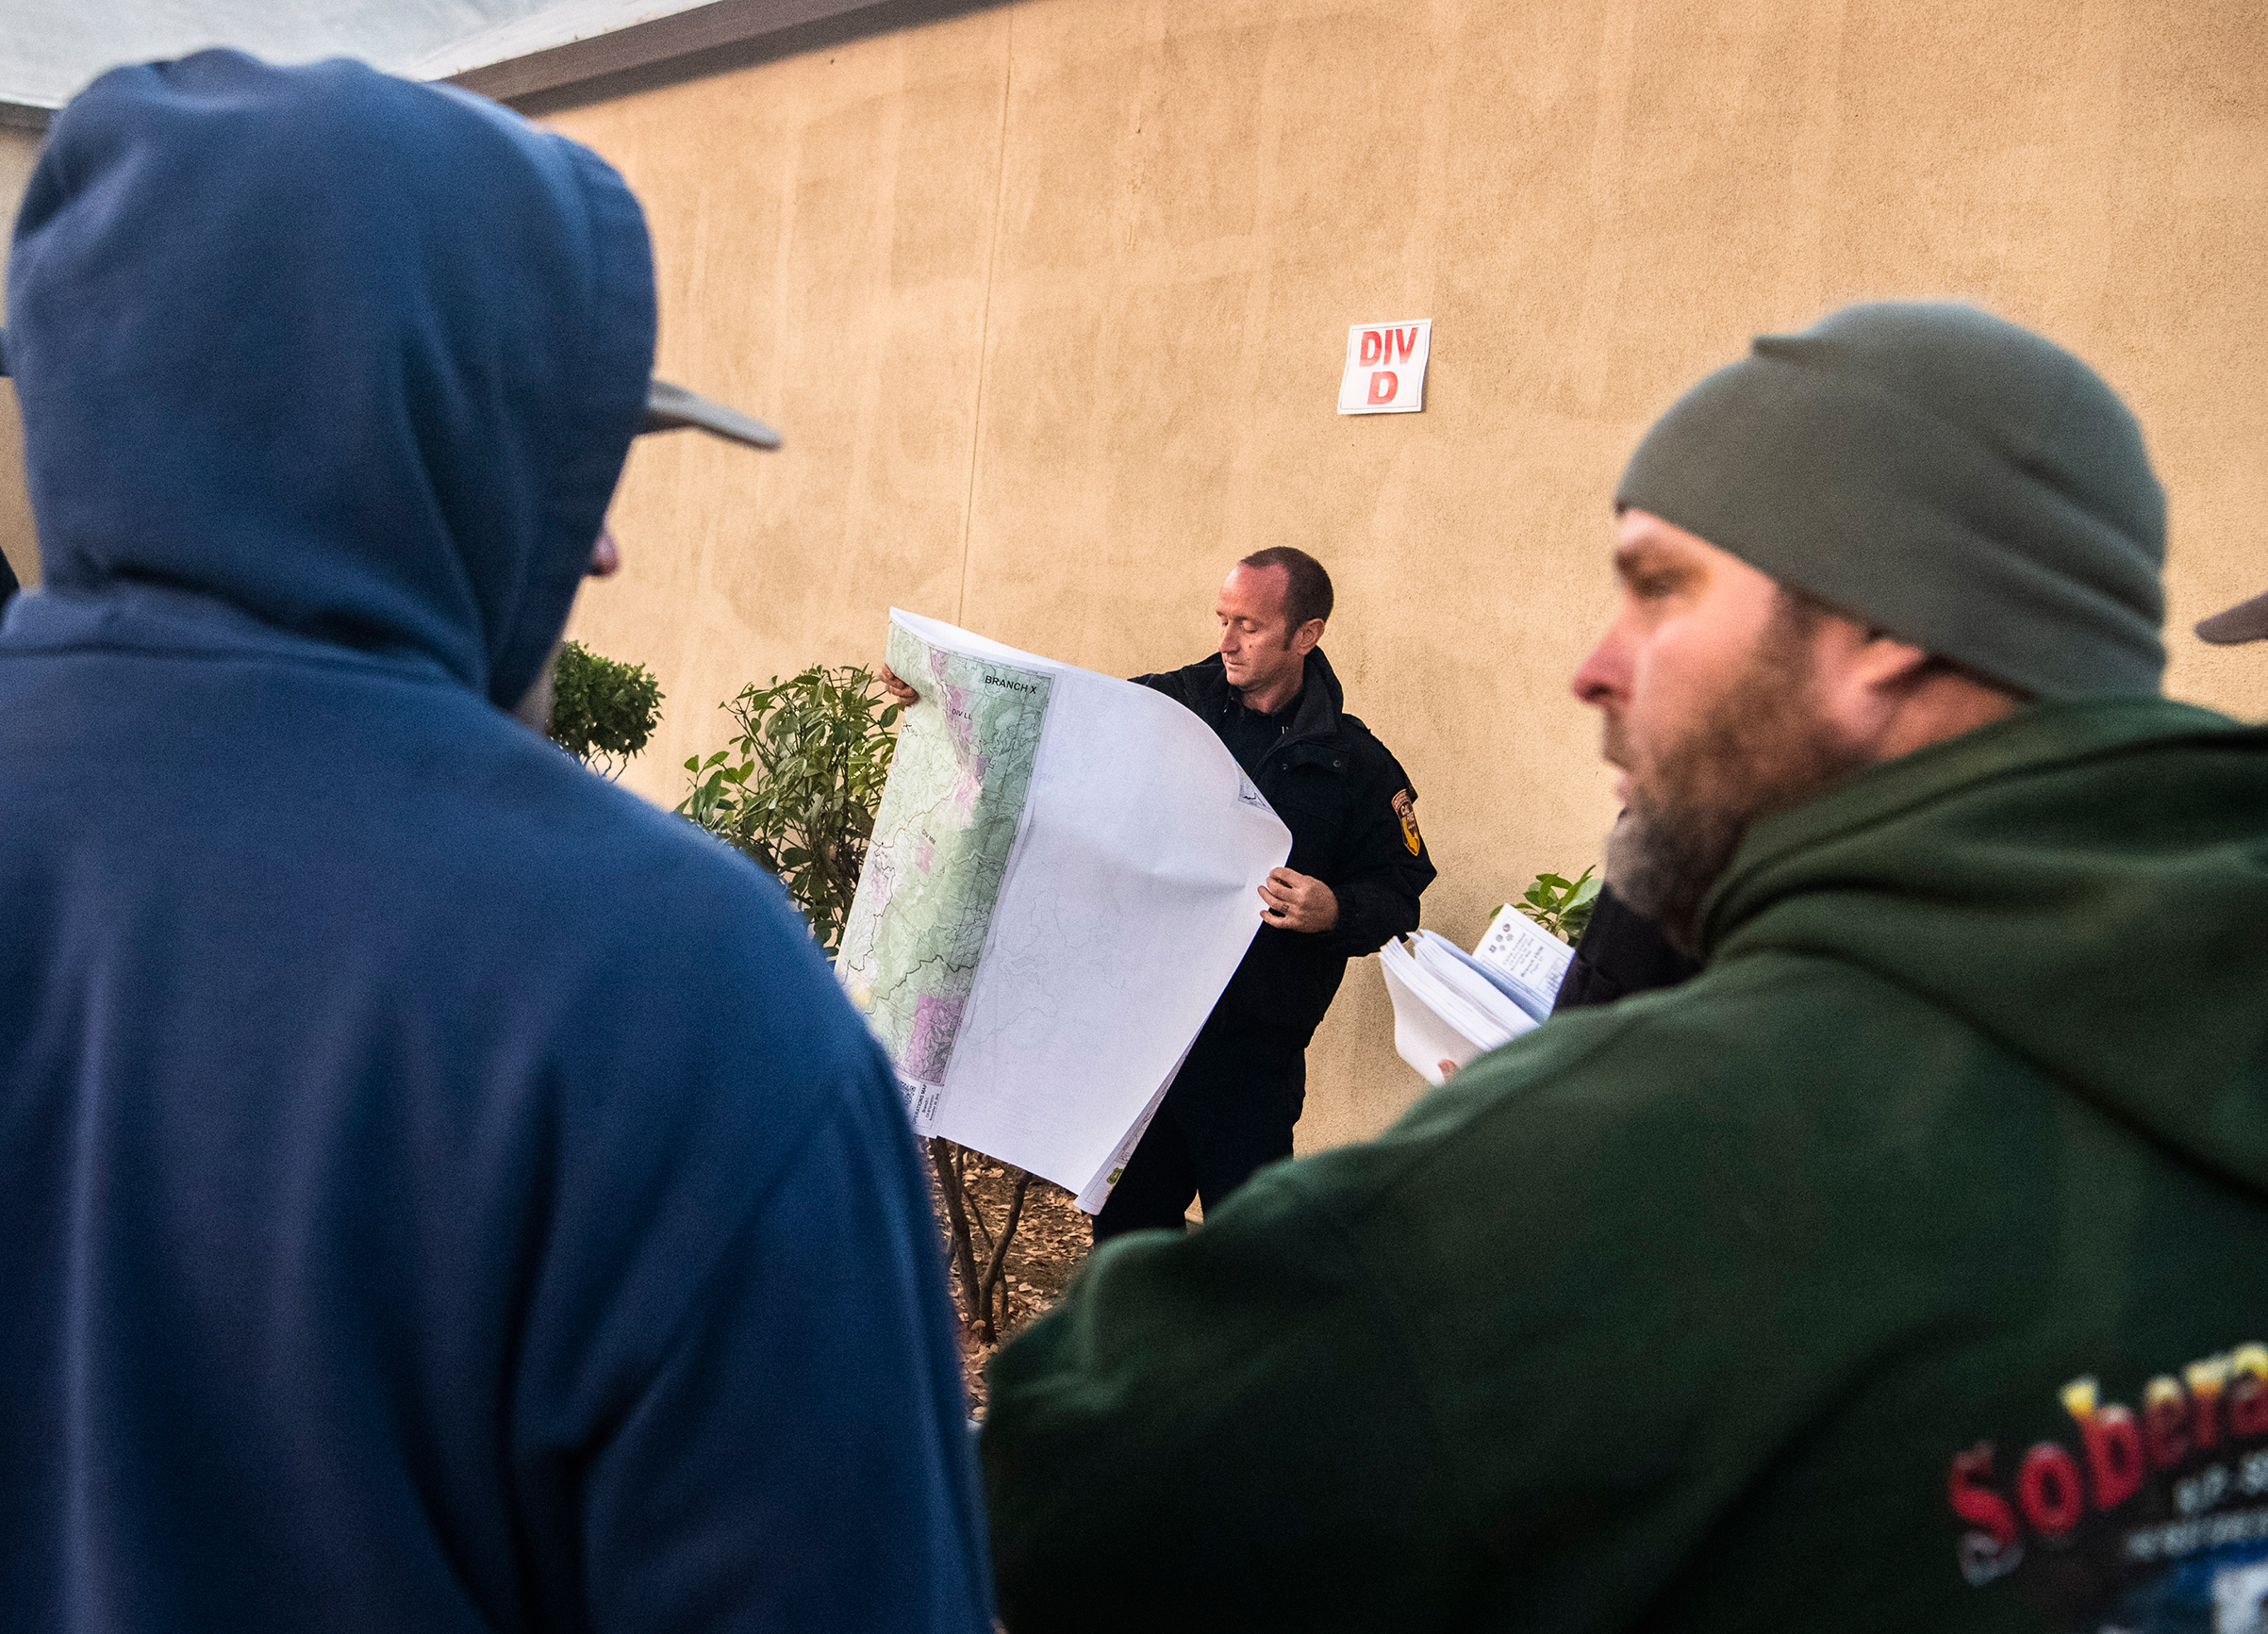 A firefighter unfurls a map for the division Delta briefing at the Camp Fire incident command post on Nov. 20, 2018.